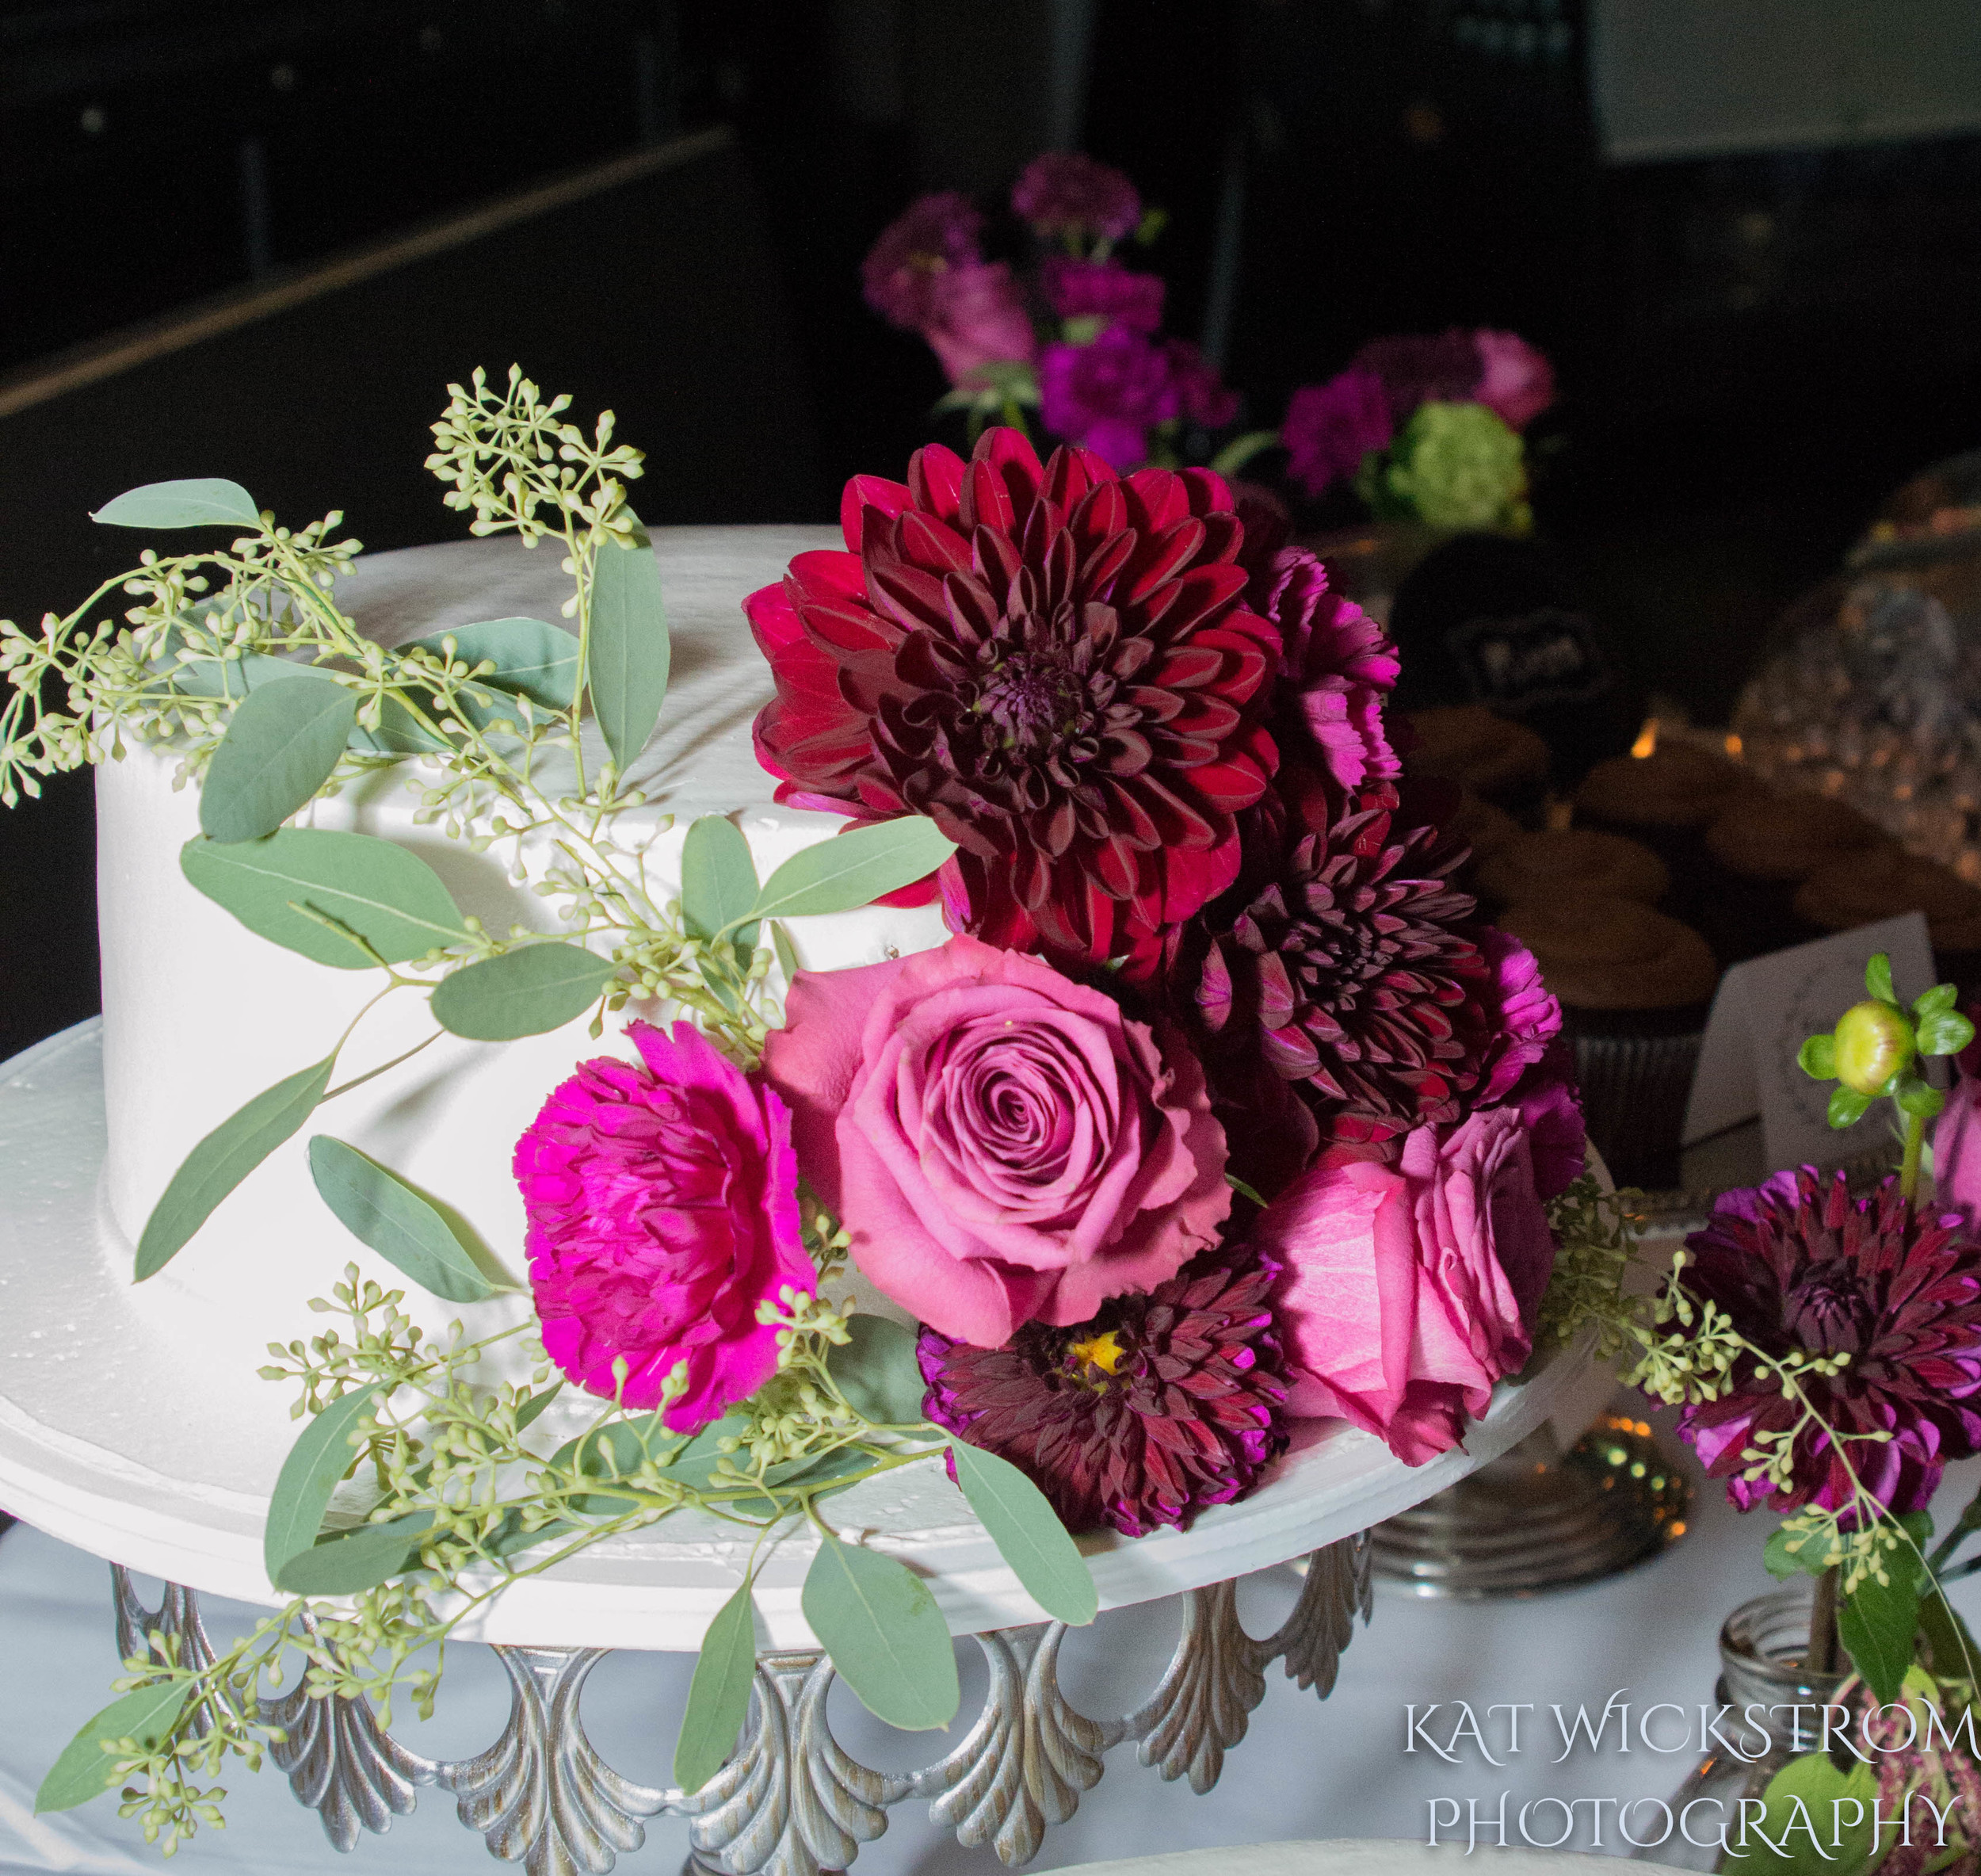 Woodland Hills Cafe Fiore Wedding Reception Cake